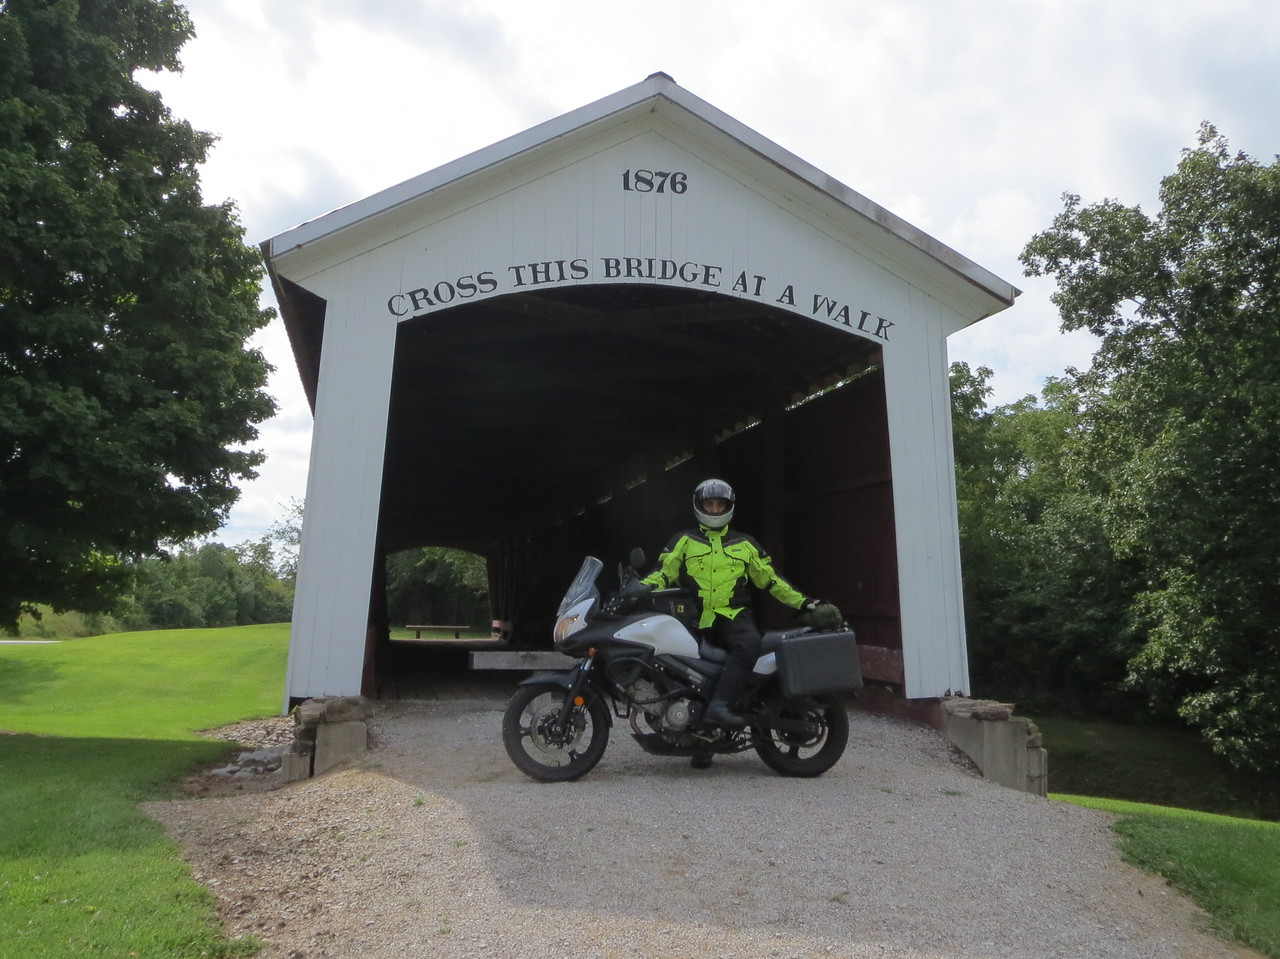 Day 1 (681 miles): Covered bridge near Rockville, IN.  This area (Parke County) has quite a few covered bridges.